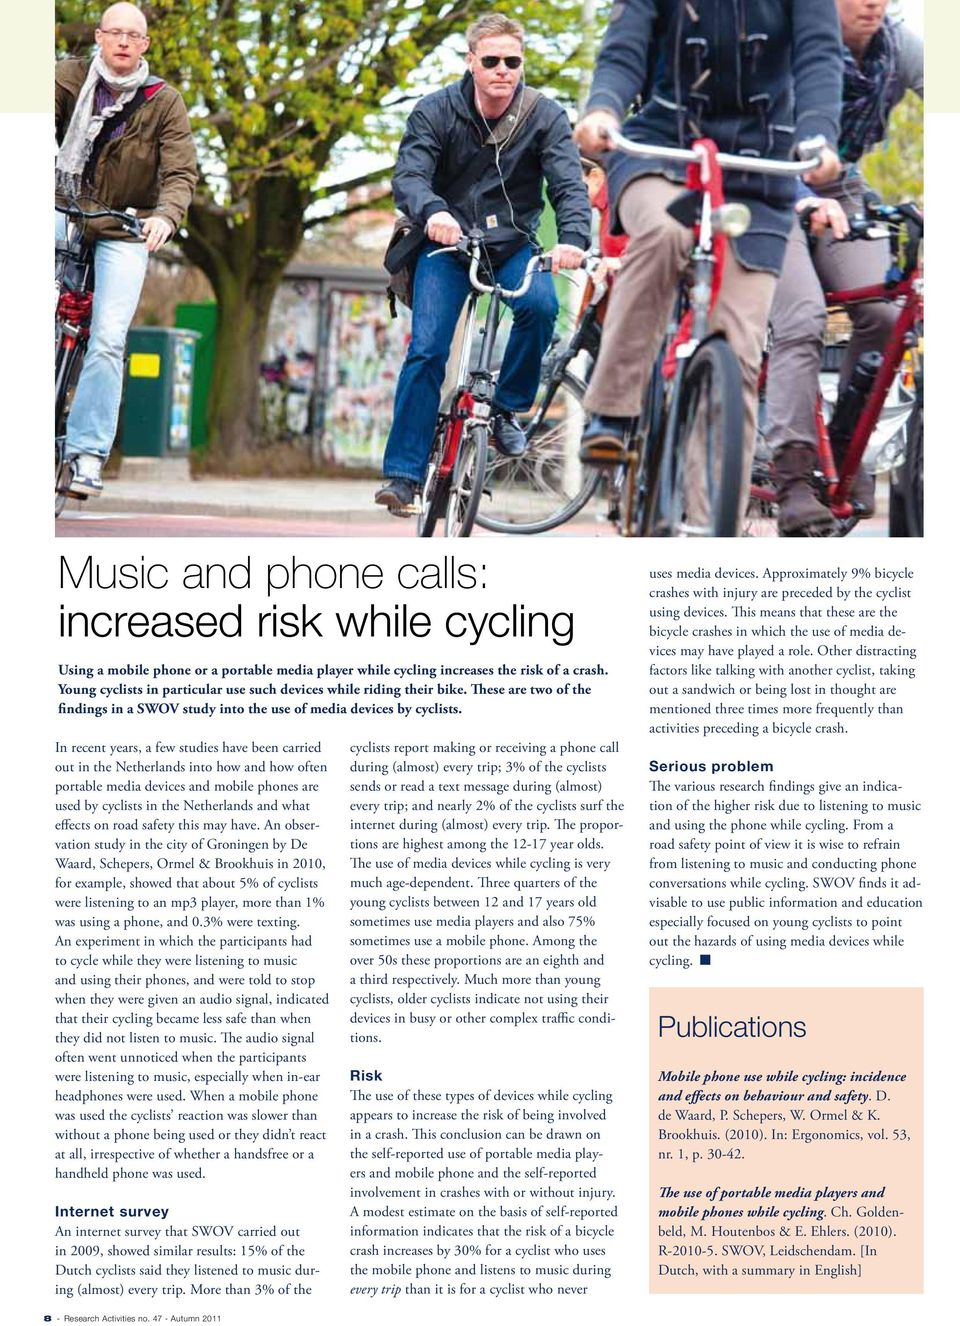 In recent years, a few studies have been carried out in the Netherlands into how and how often portable media devices and mobile phones are used by cyclists in the Netherlands and what effects on